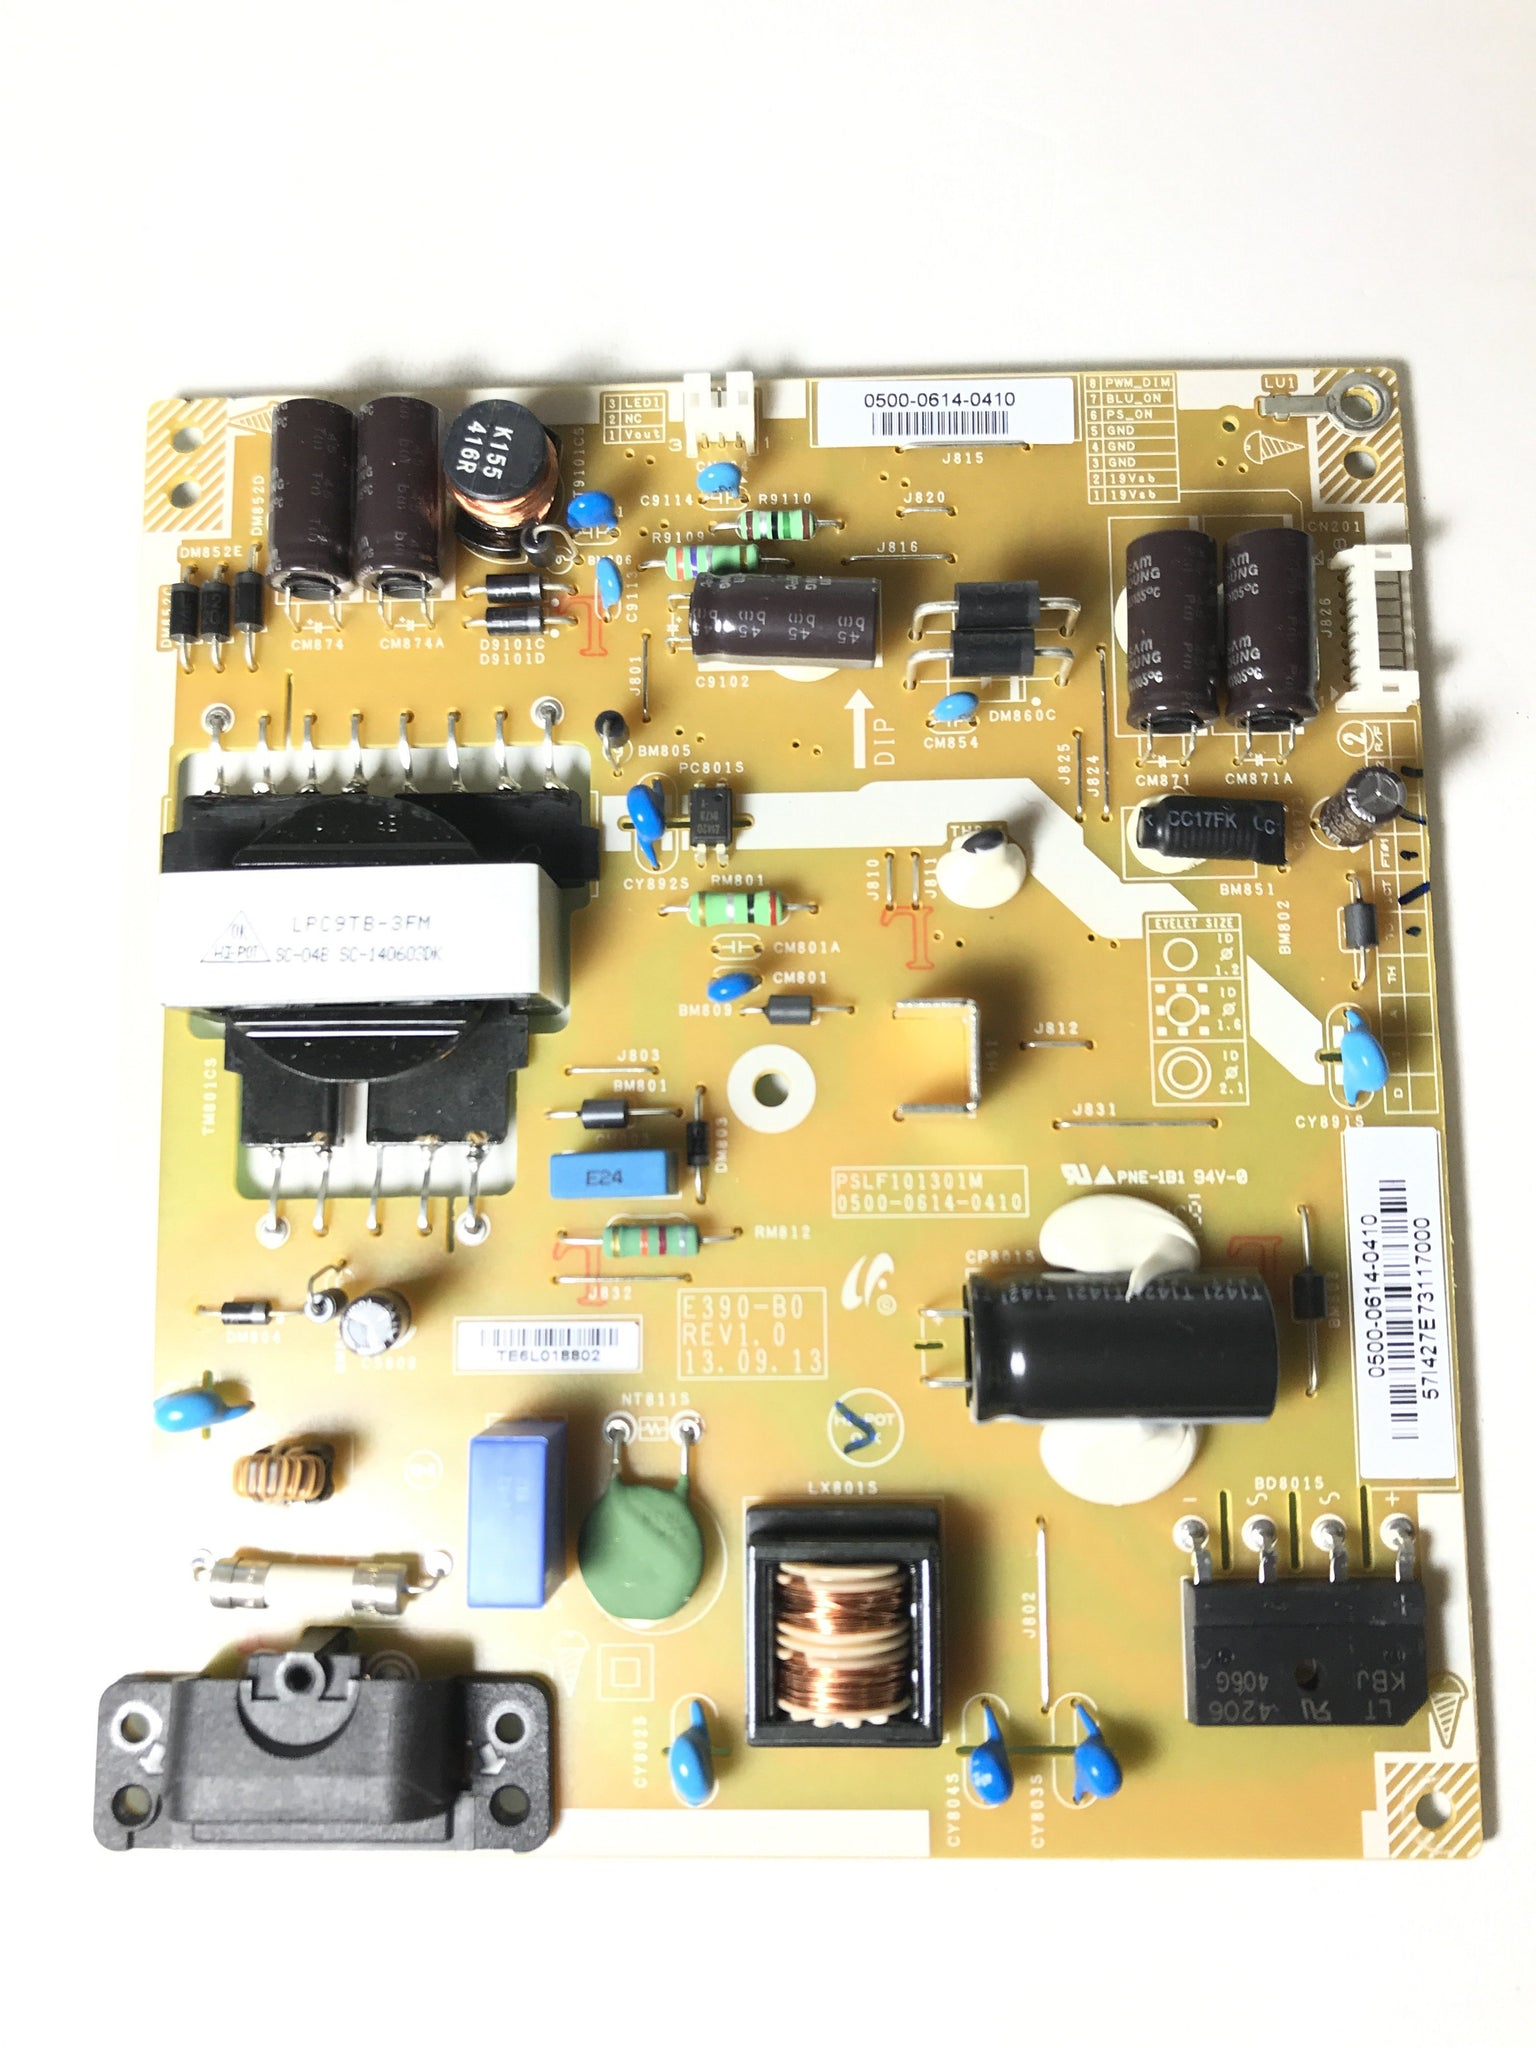 Vizio/JVC 0500-0614-0410 Power Supply / LED Board